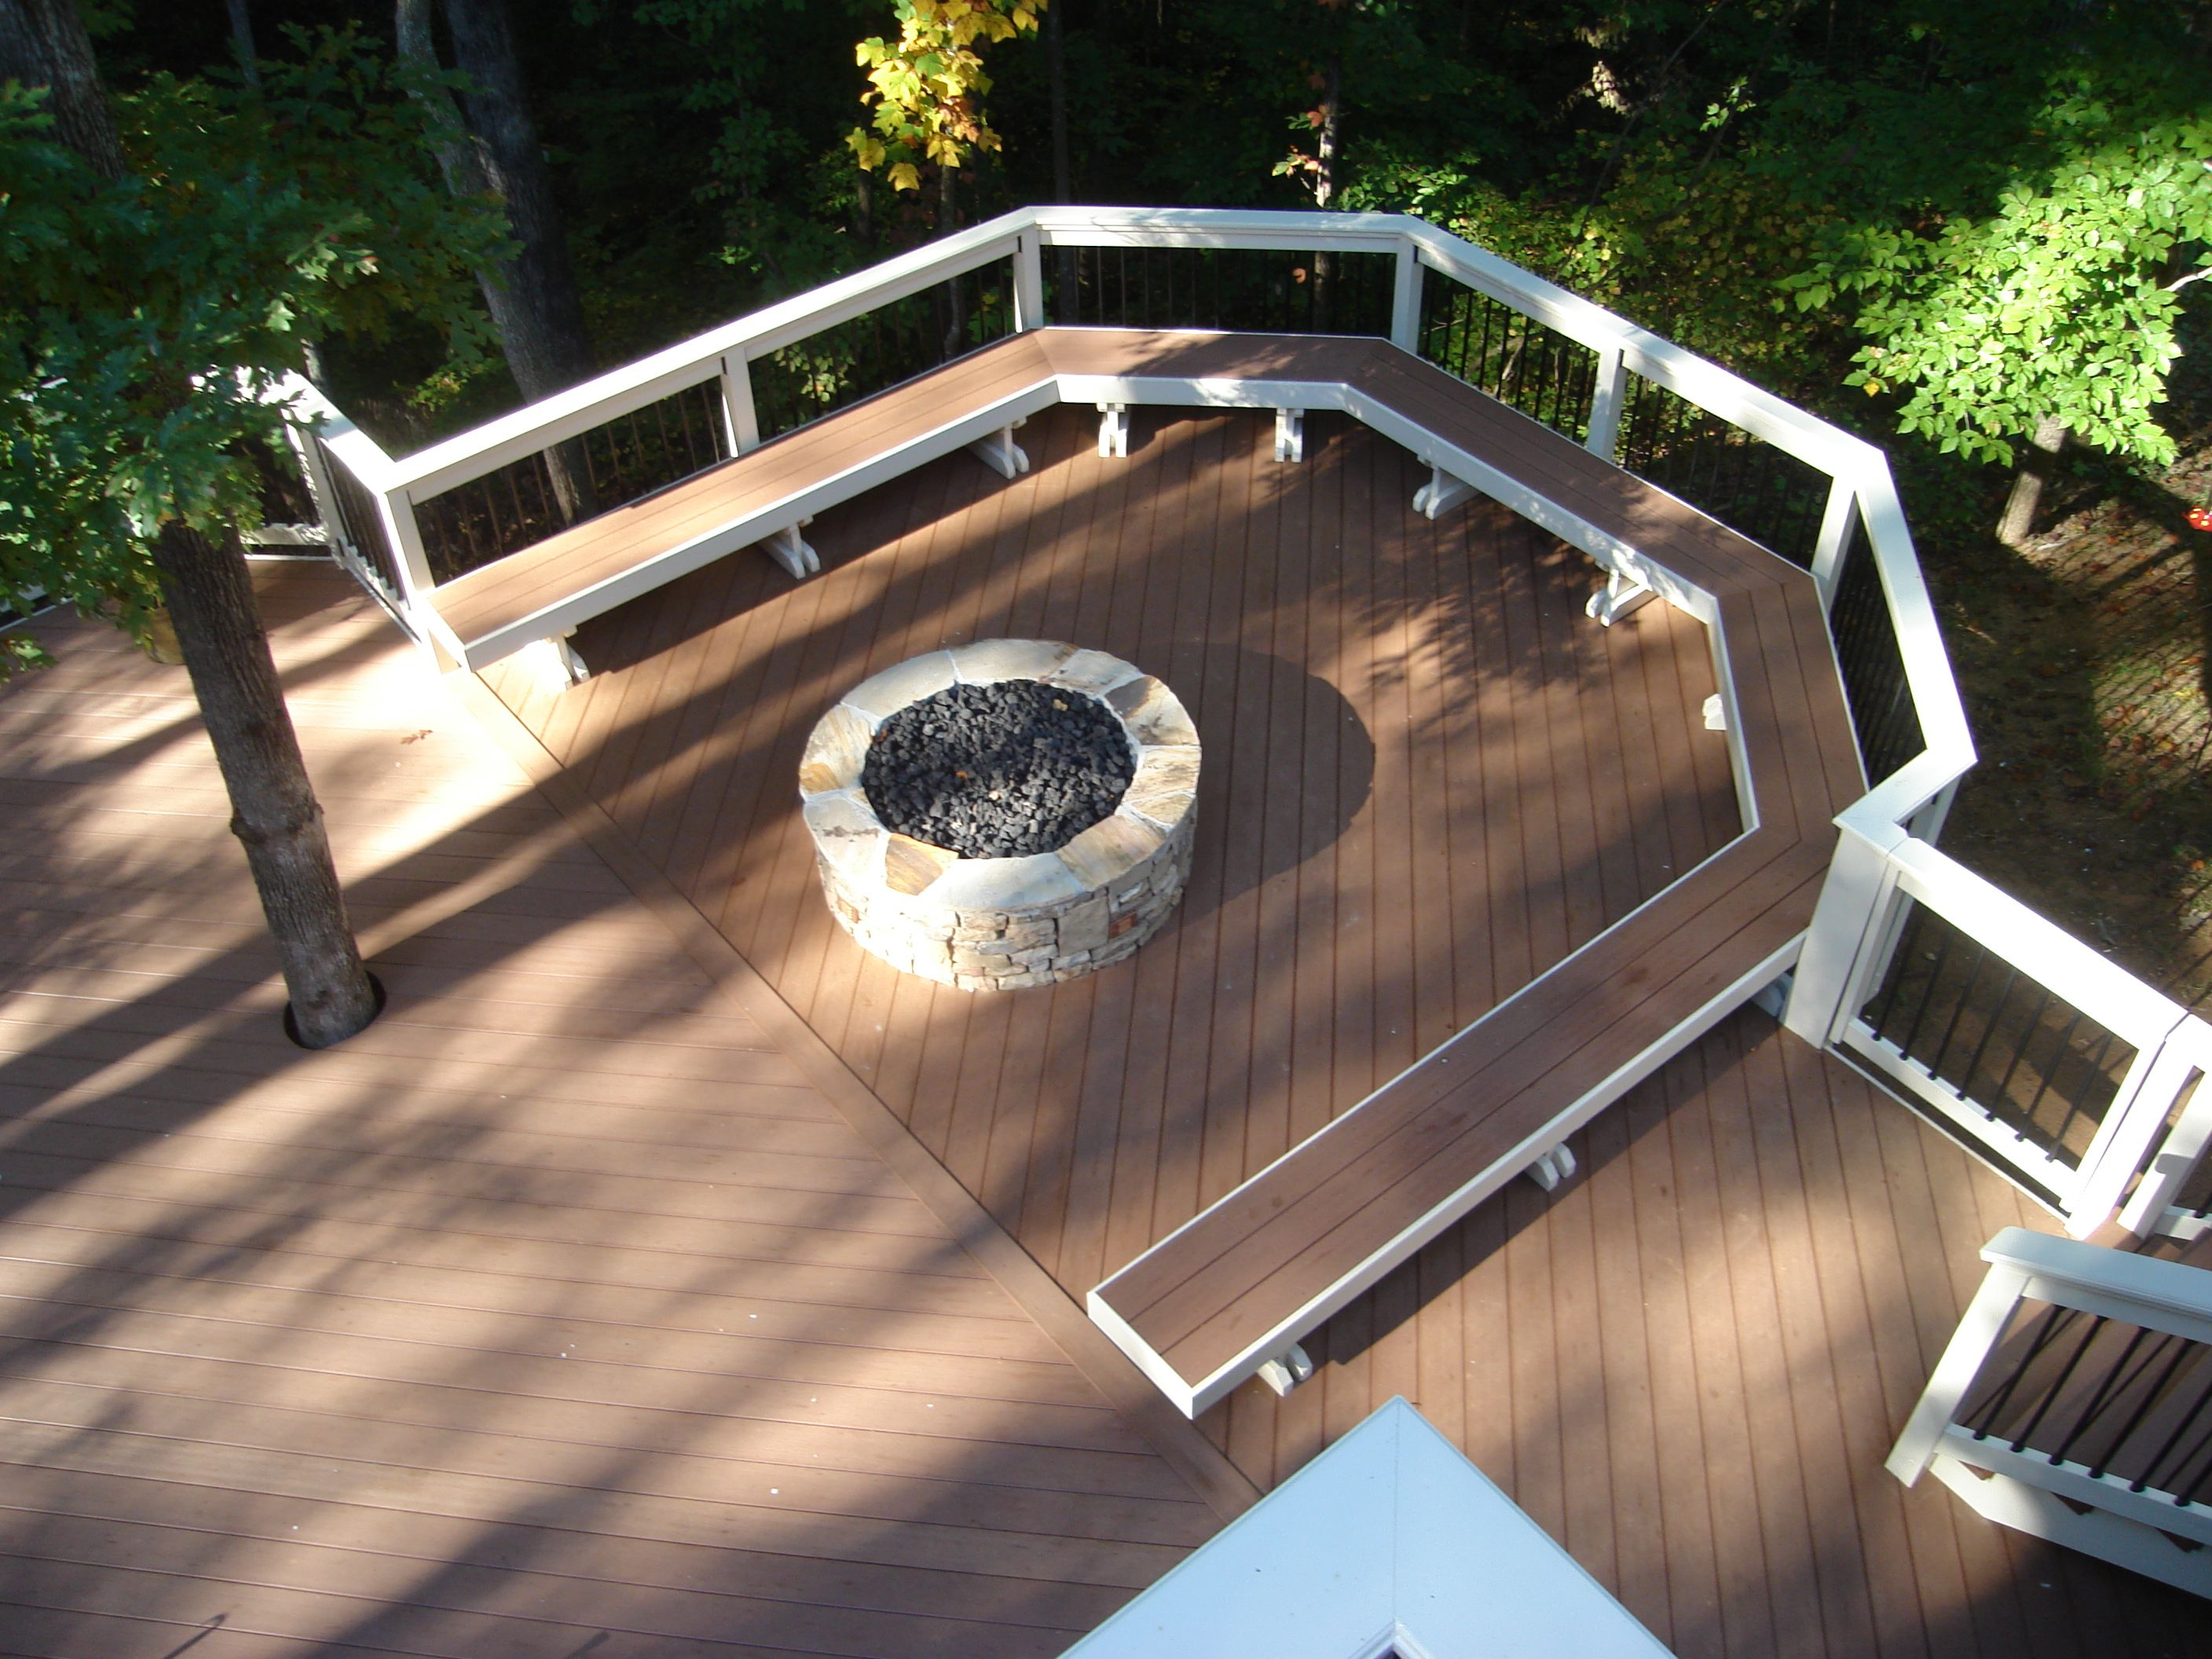 Metal fire pit on wood deck - Timber Tech Composite Deck With Curved Bench And Fire Pit In Beavercreek Ohio Greene County